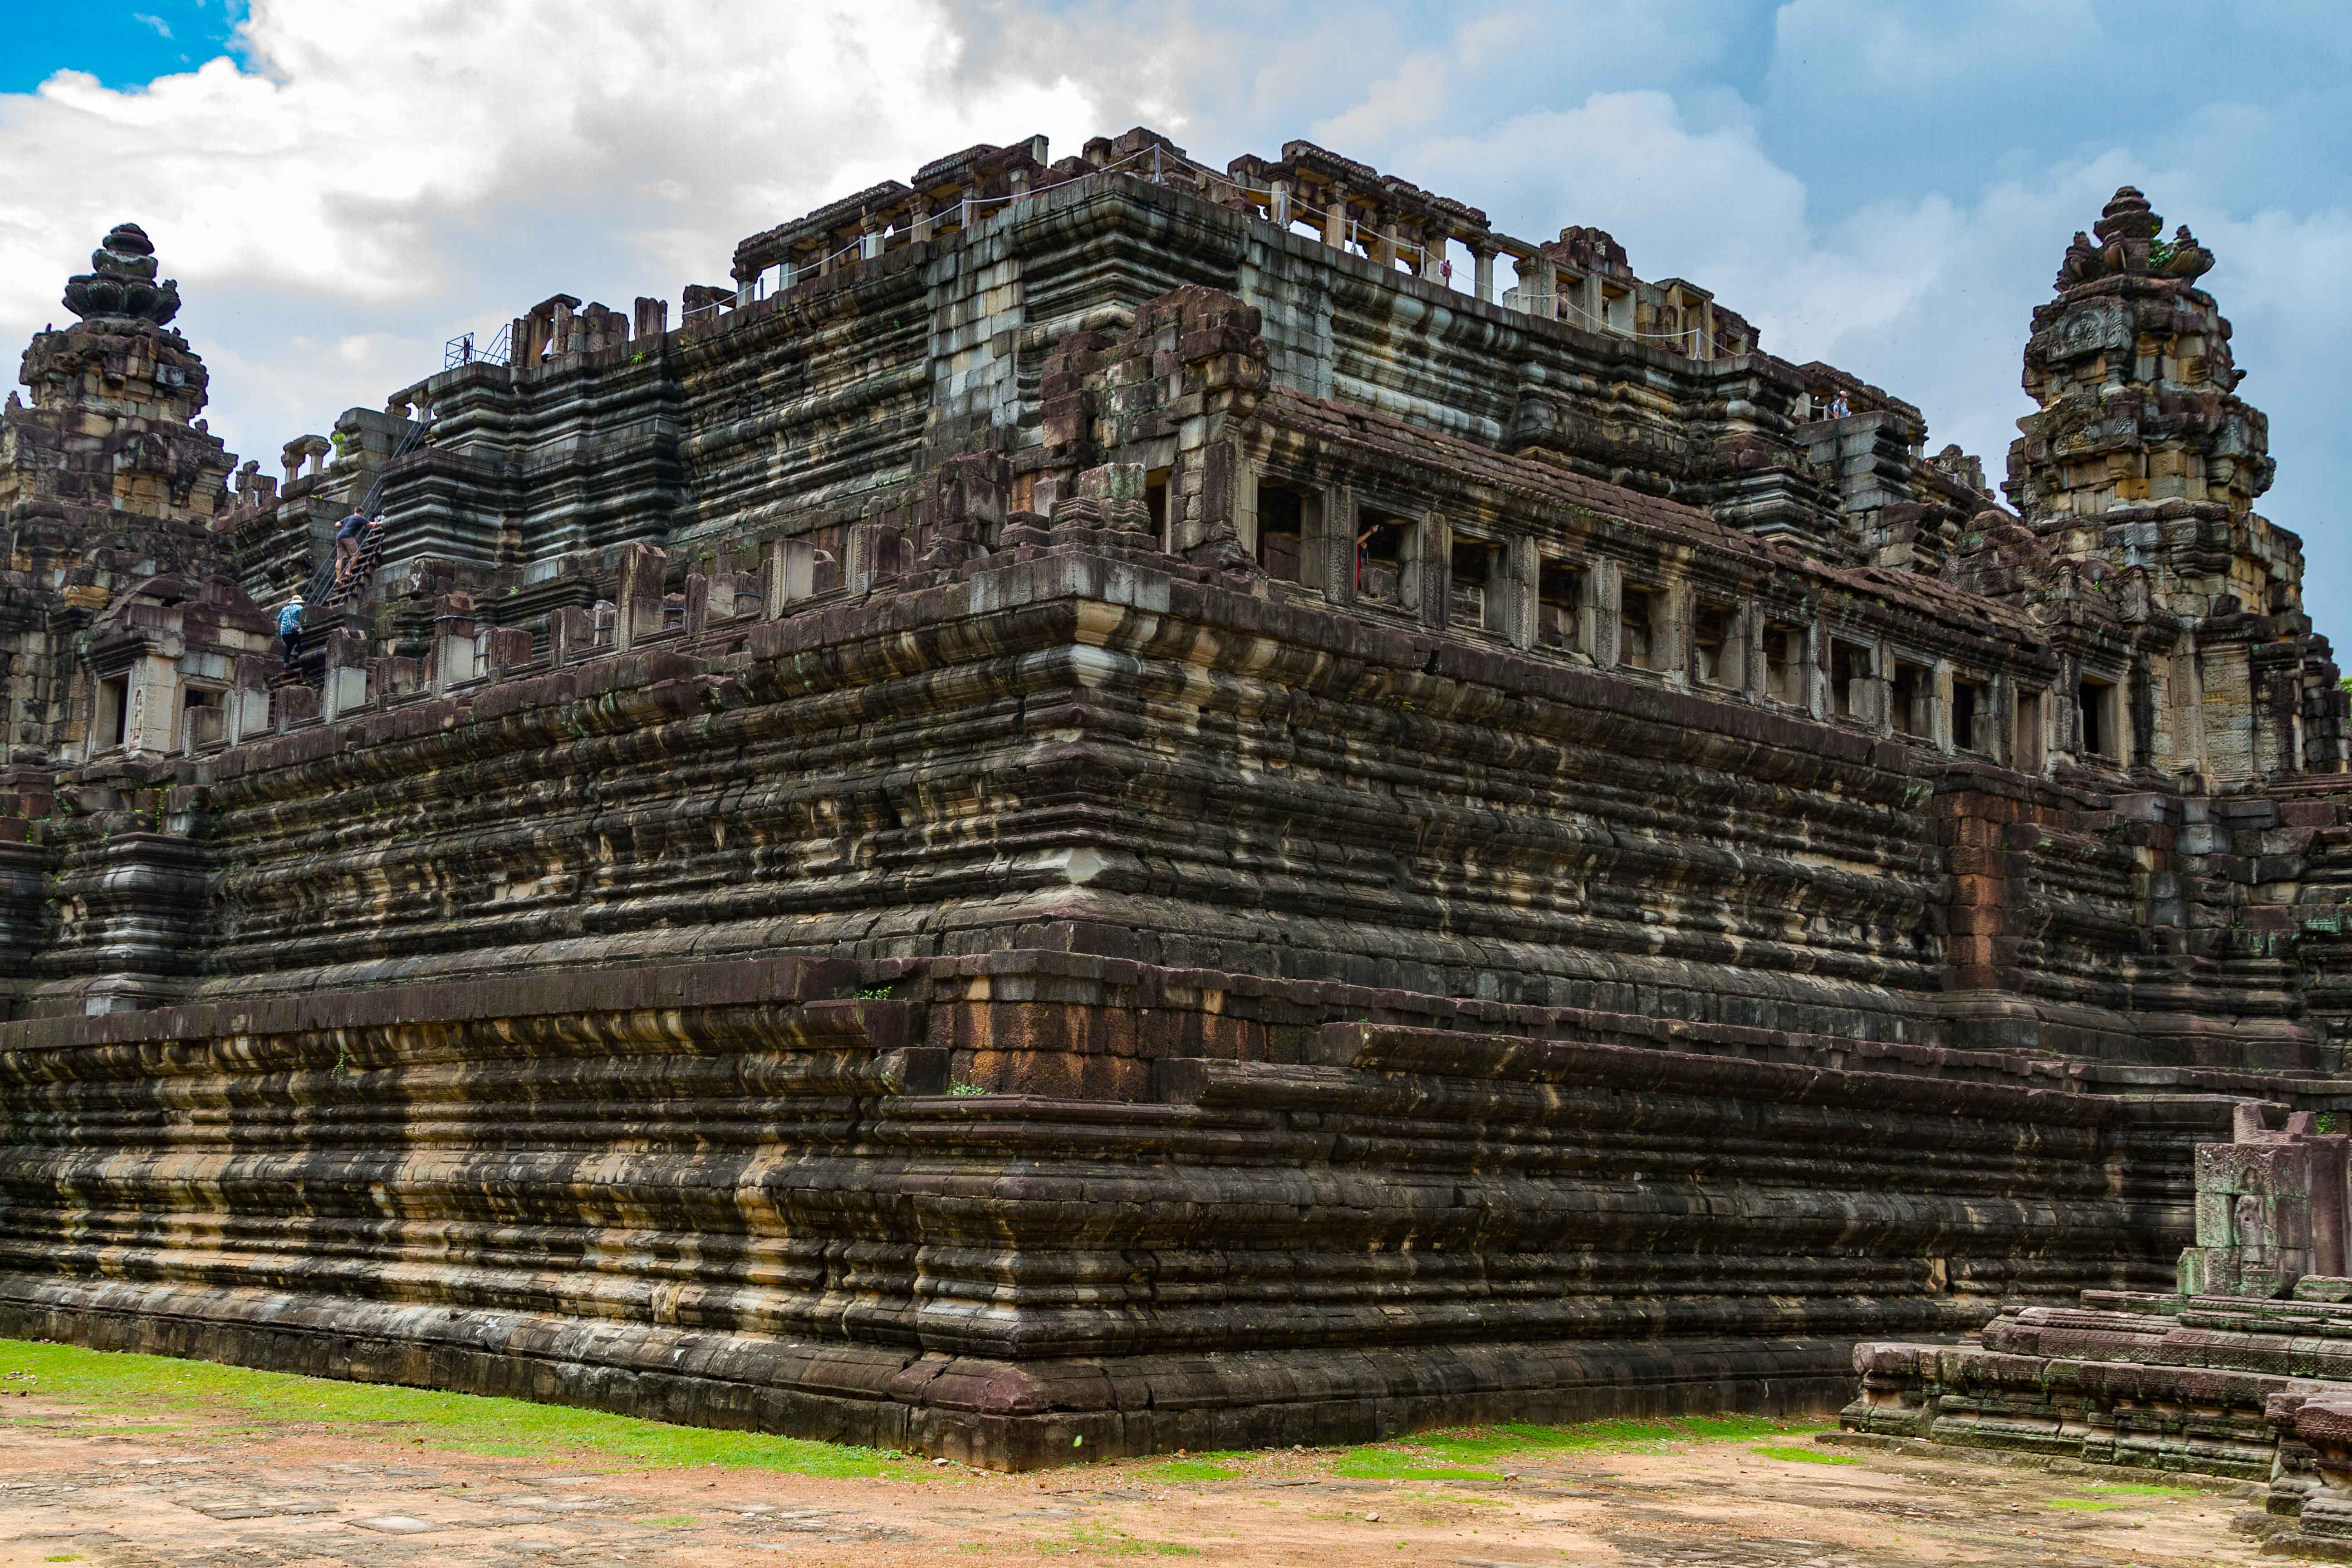 Side-View-of-Baphuon-Temple-at-Angkor-Wat-Cambodia